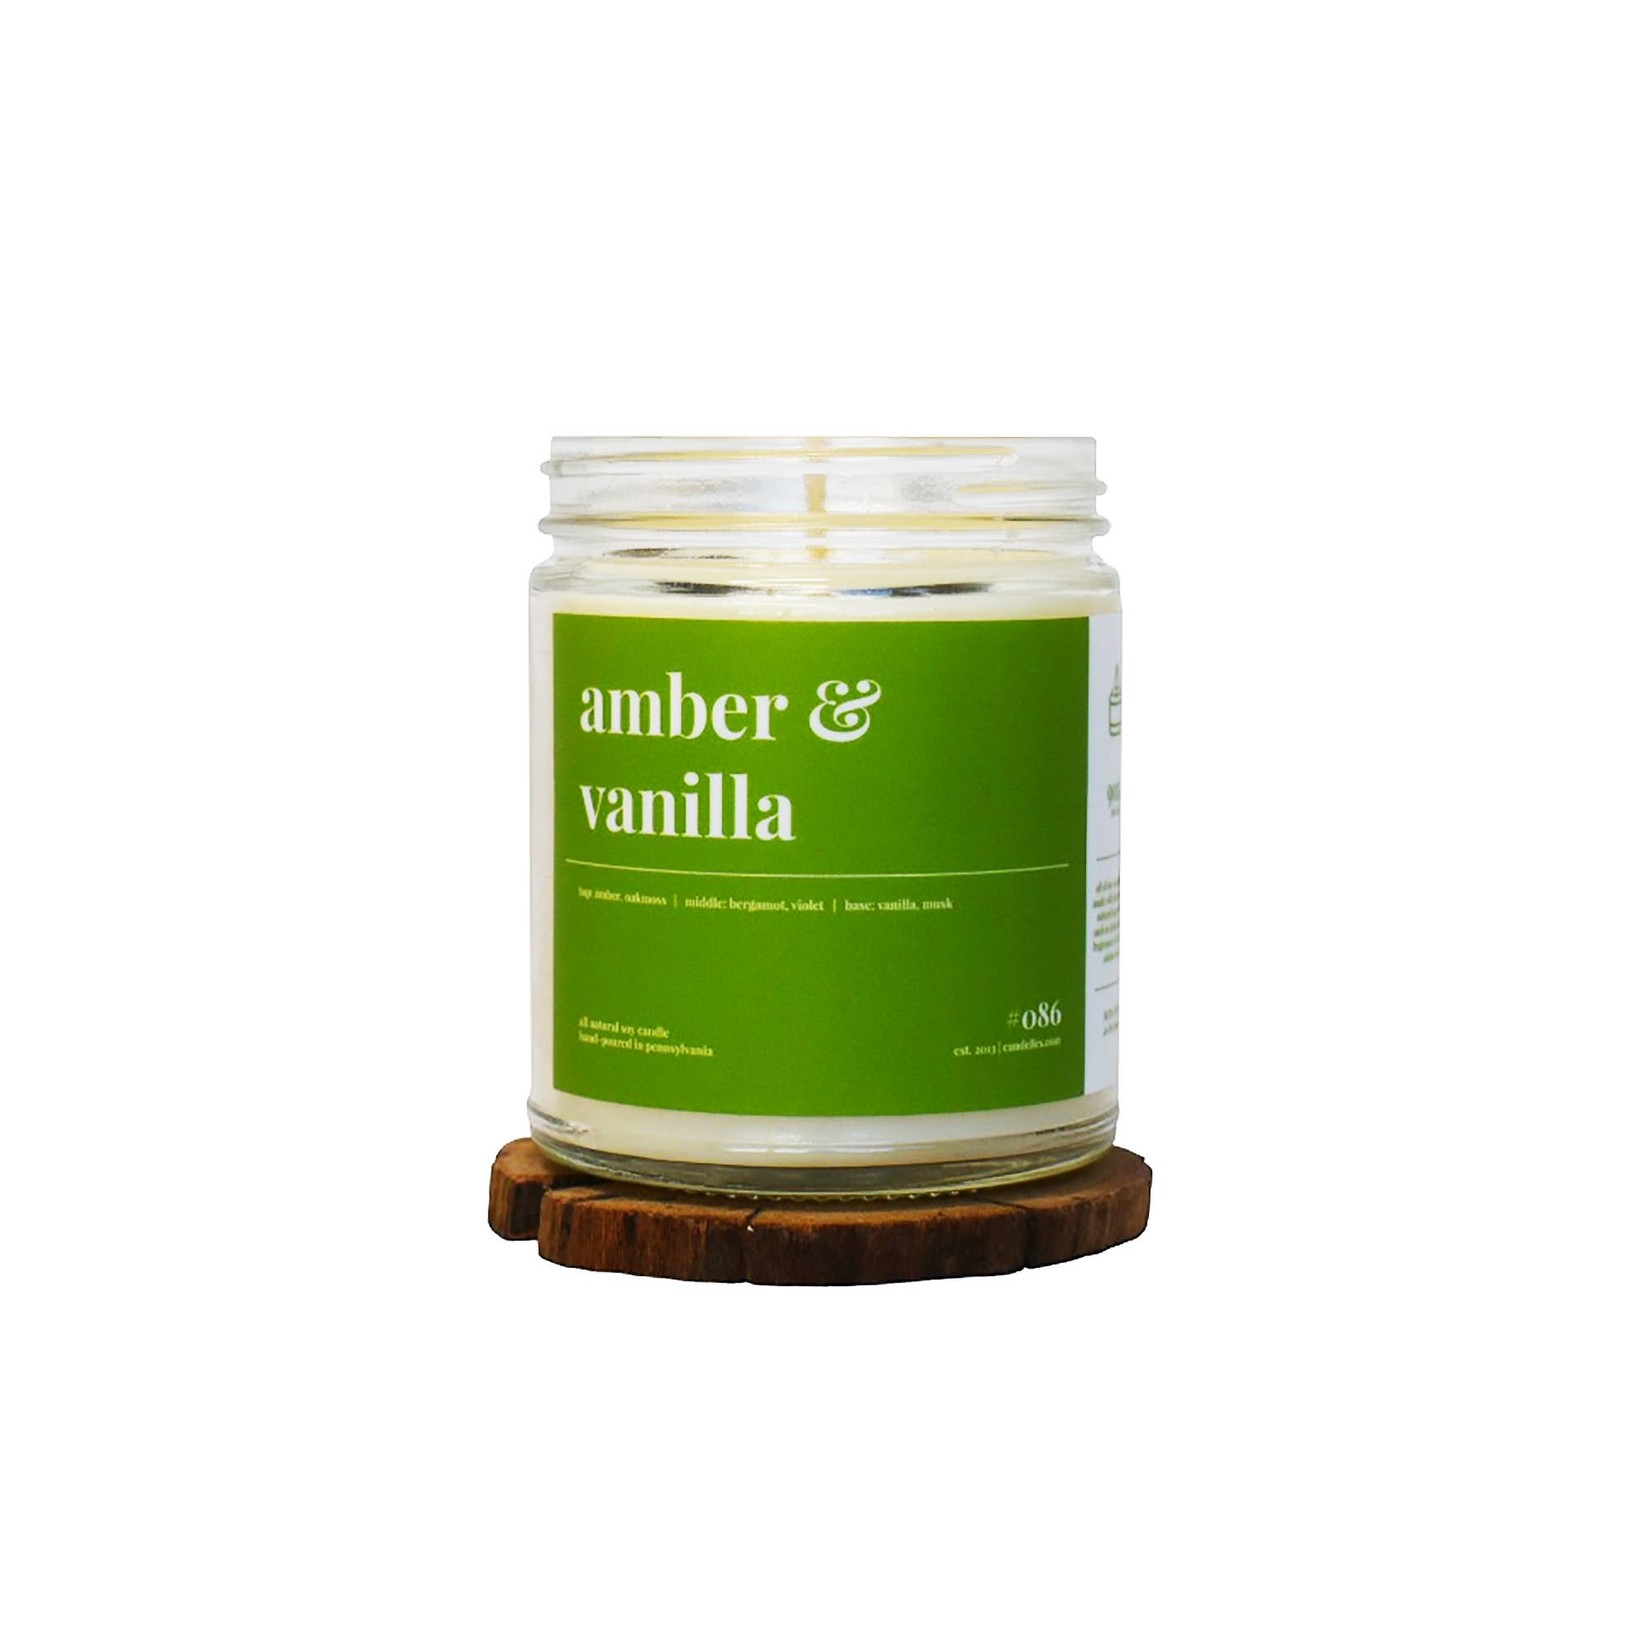 Candelles Soy Candles Amber and Vanilla 9 oz Soy Candle